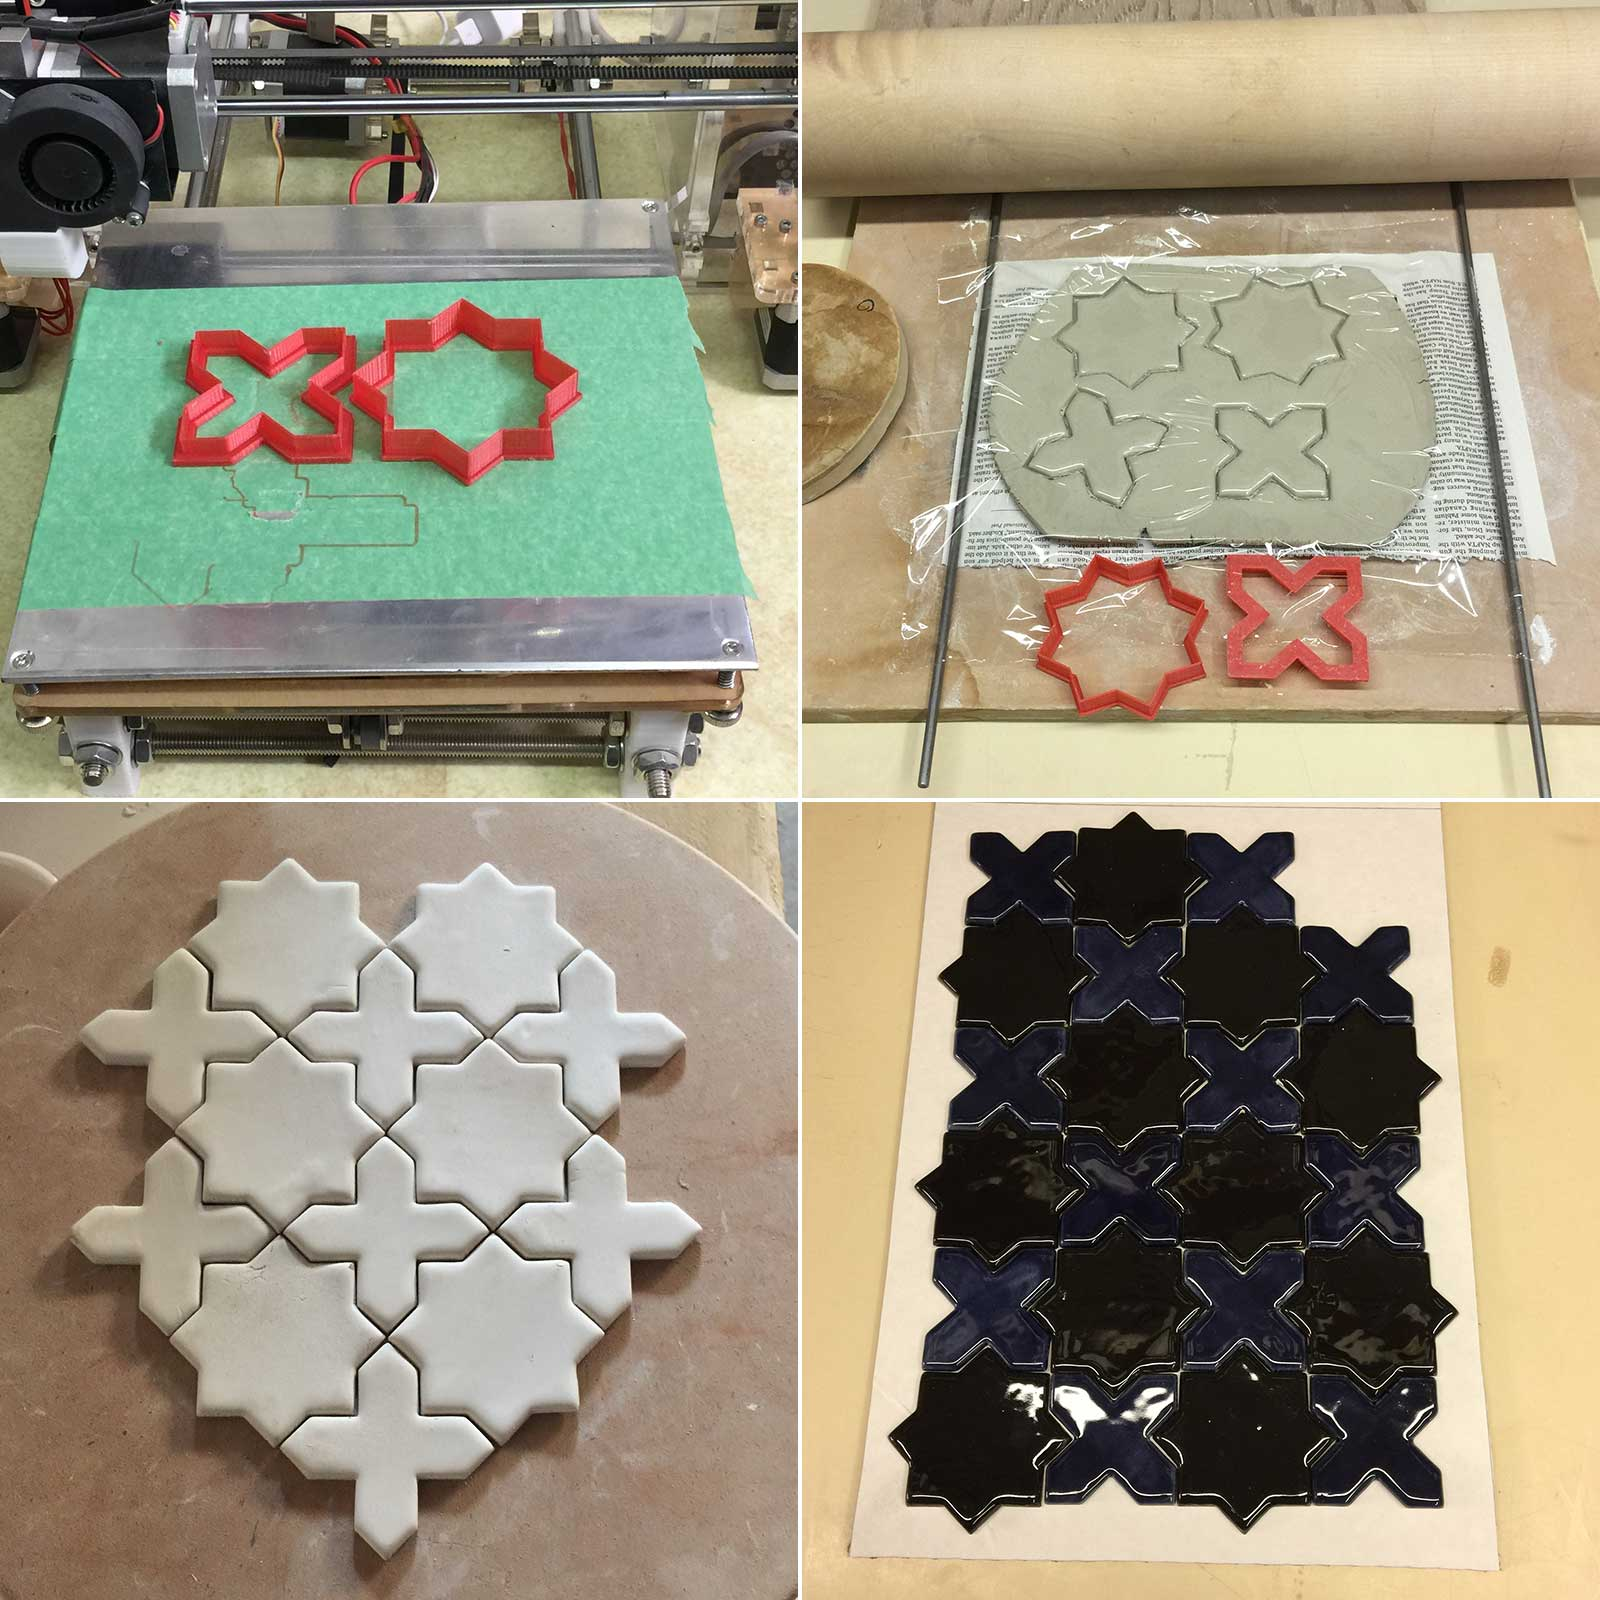 Making ceramic tile shapes by 3D printing your own cookie cutters